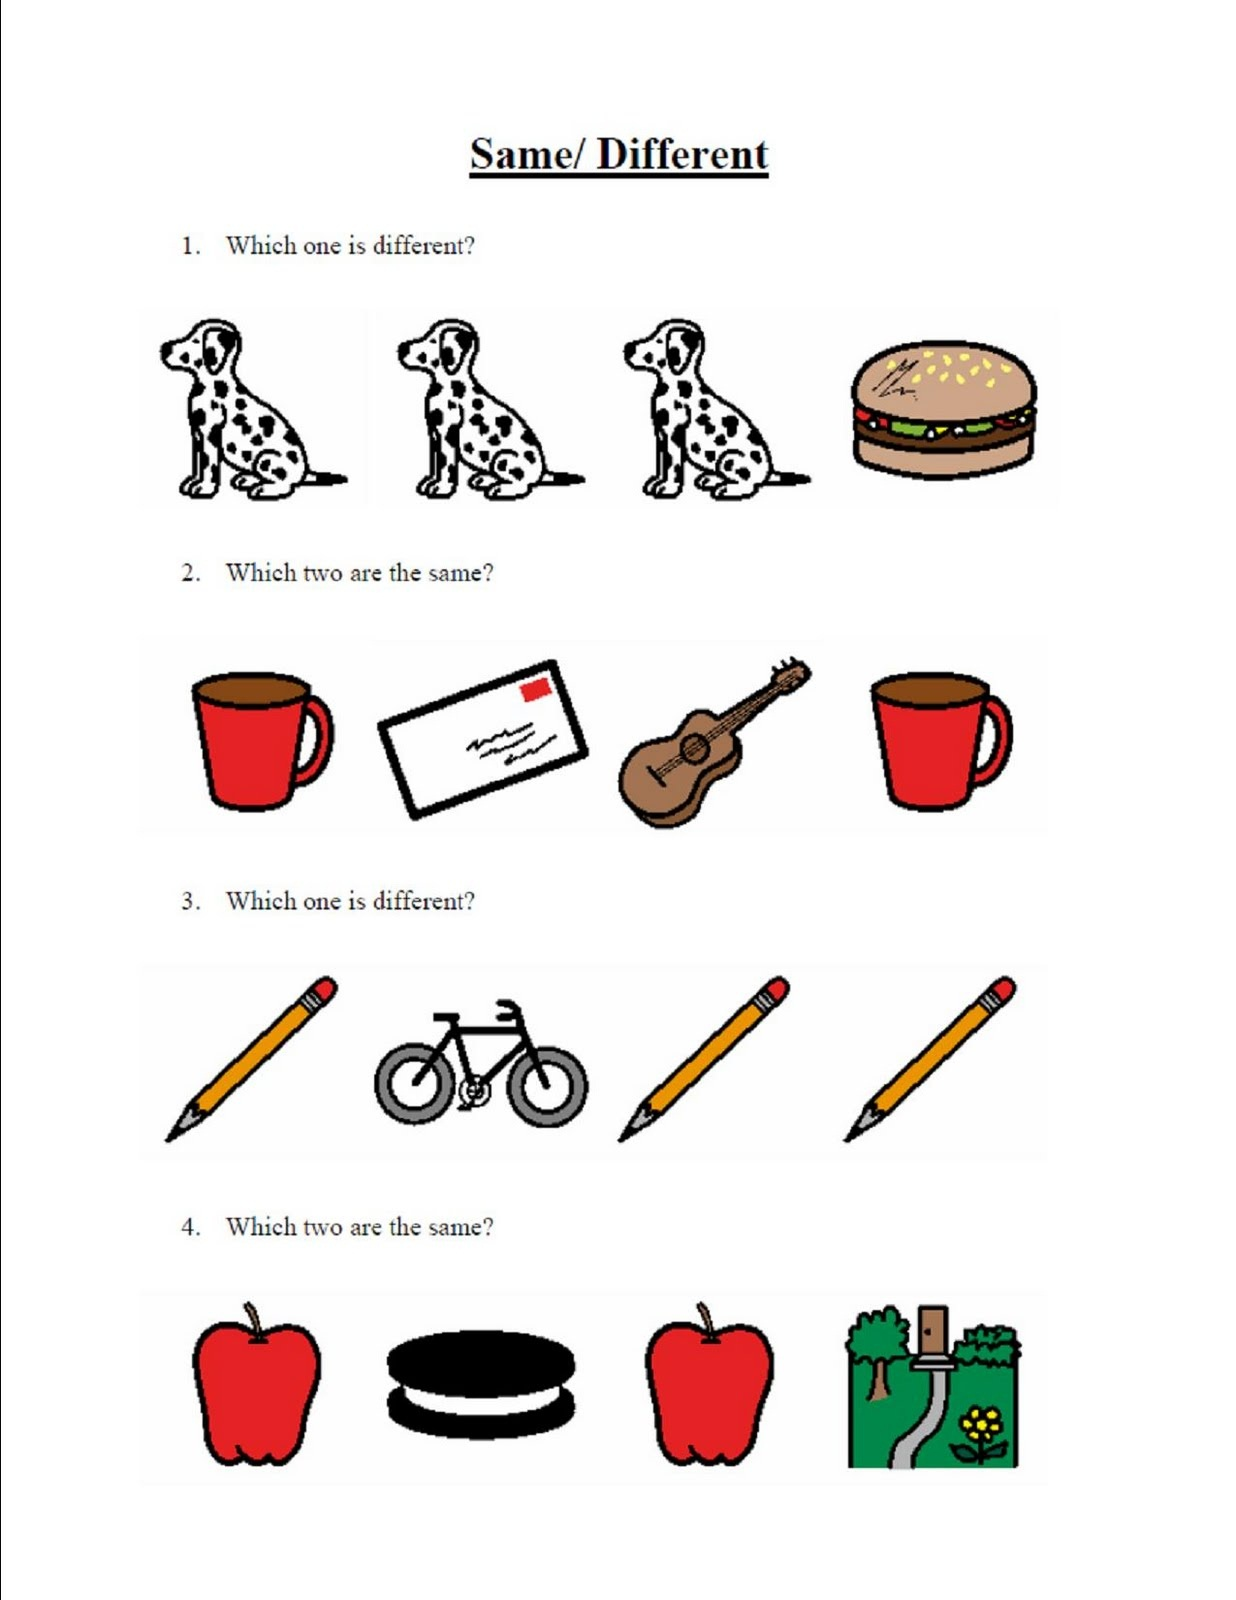 Same and Different Worksheets for Kids – Same Different Worksheets